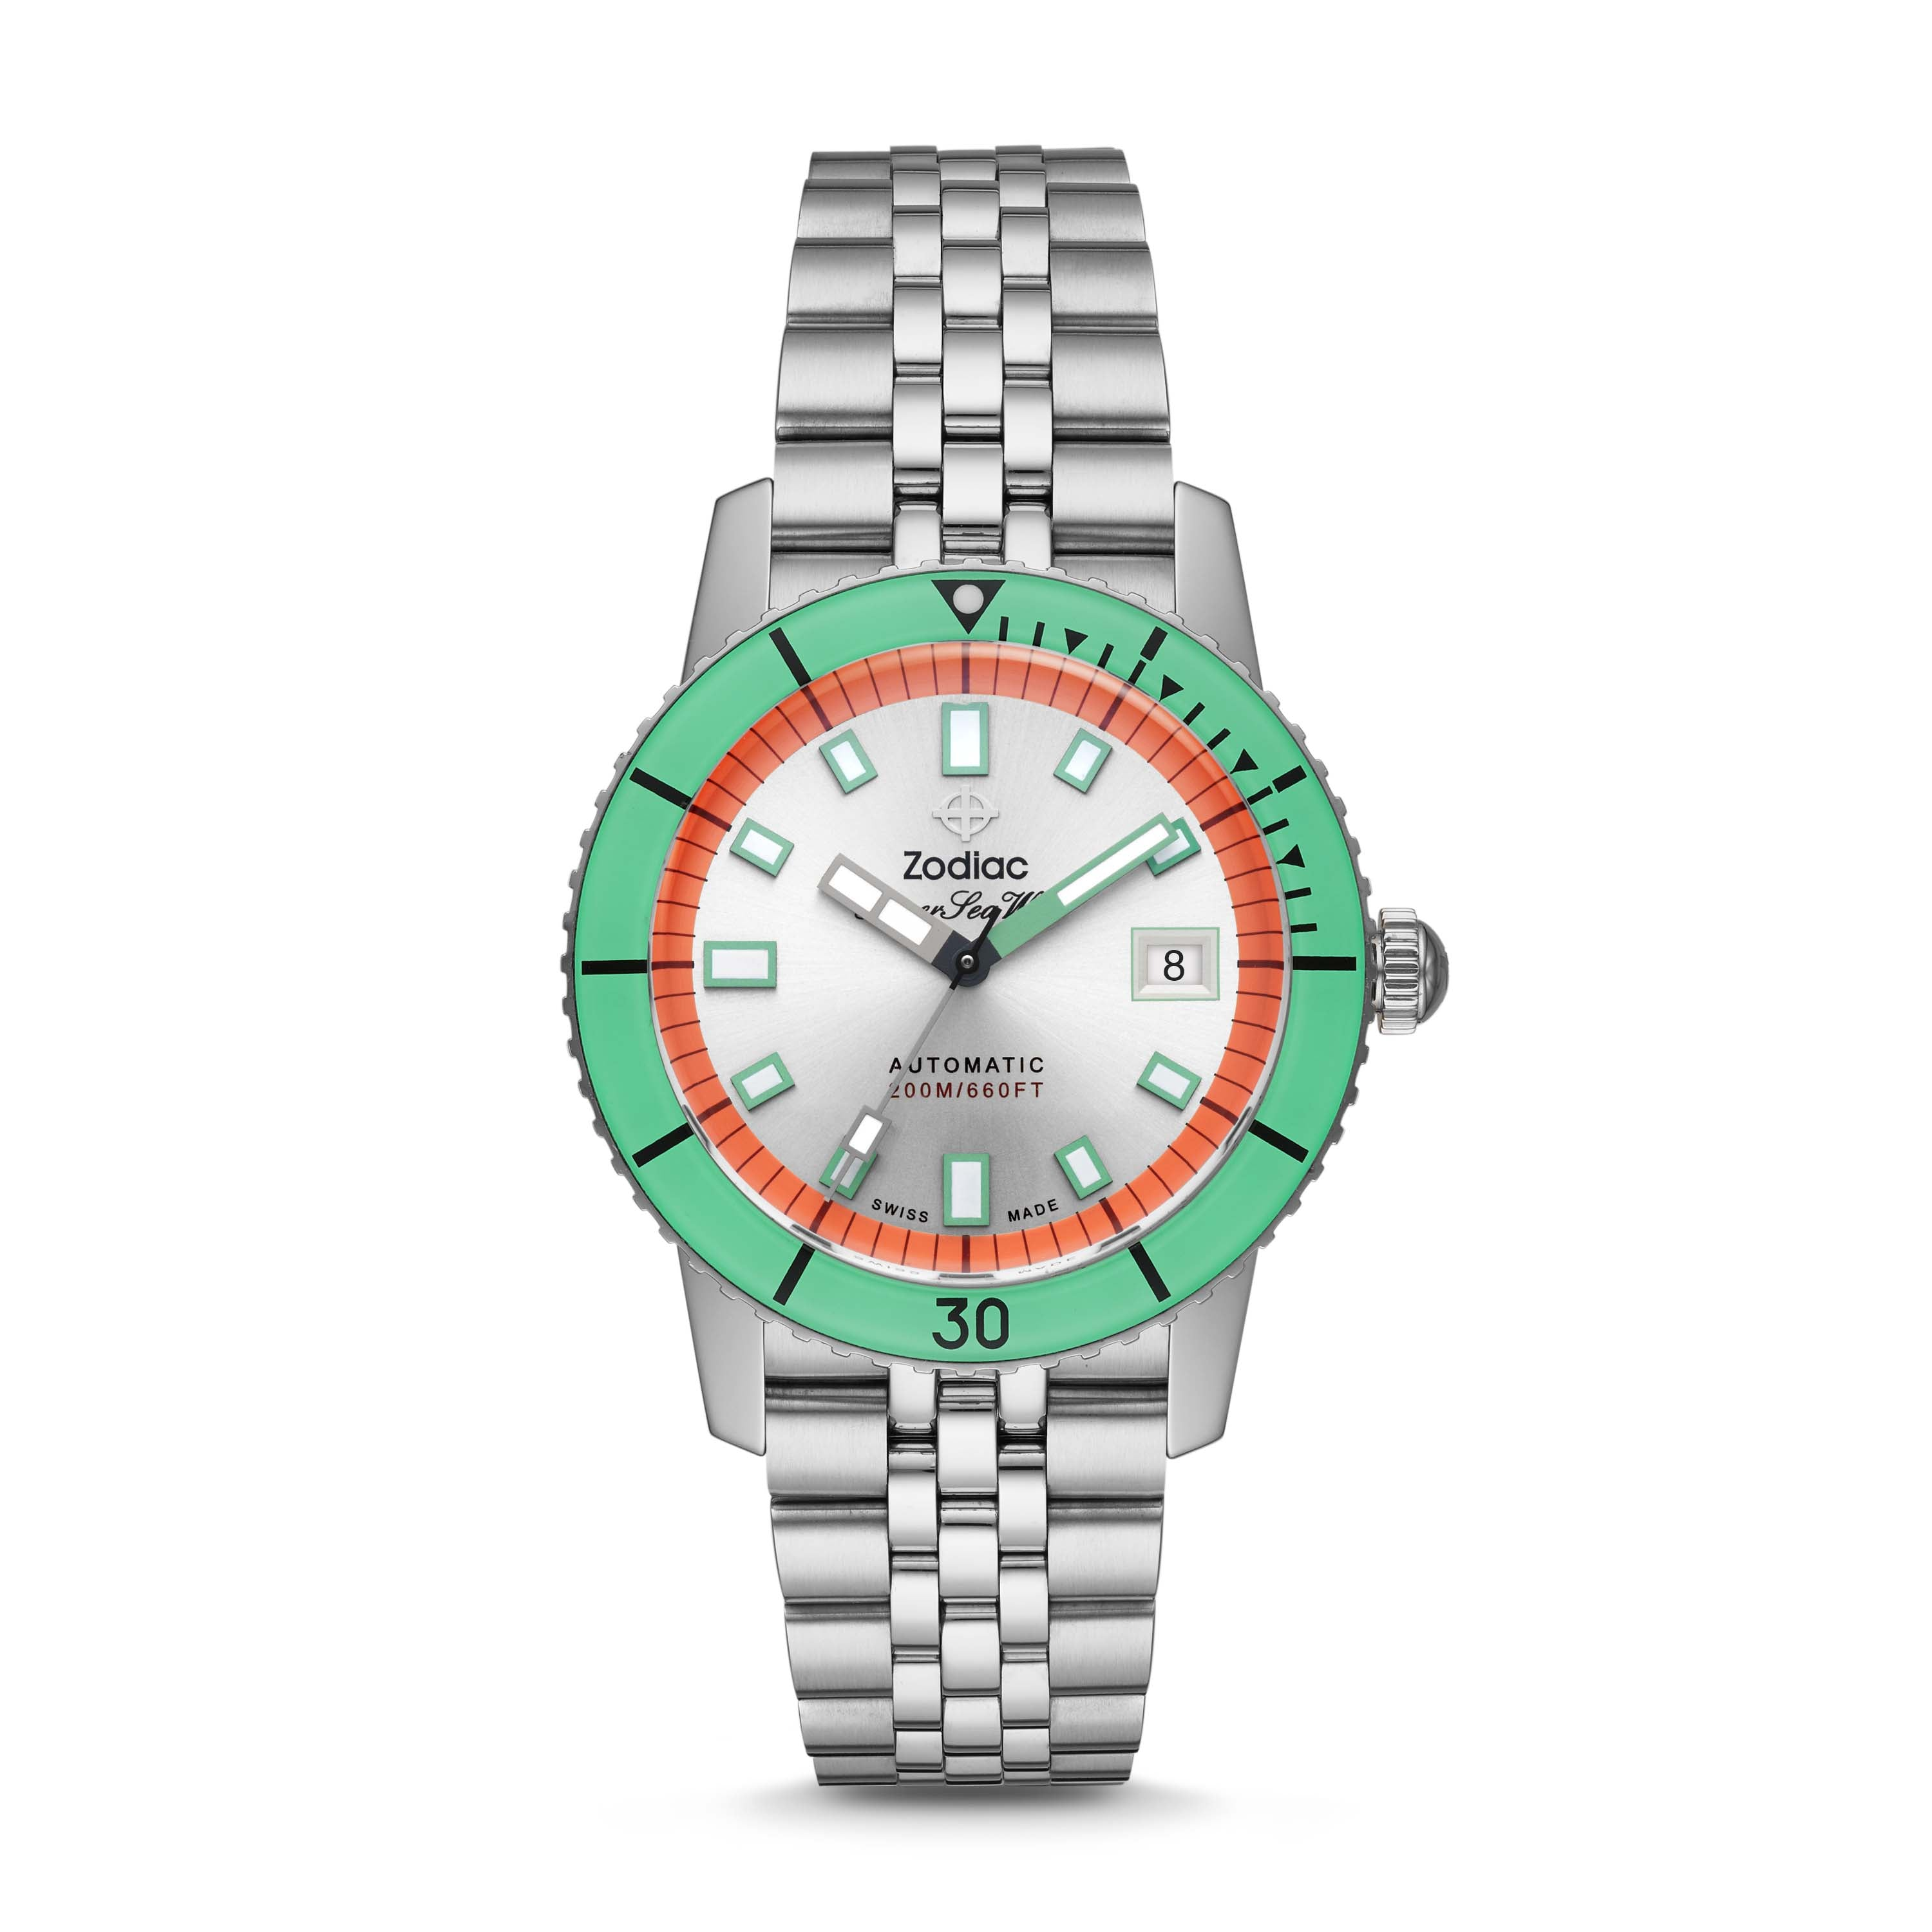 ZODIAC SUPER SEA WOLF AUTOMATIC STAINLESS STEEL WATCH